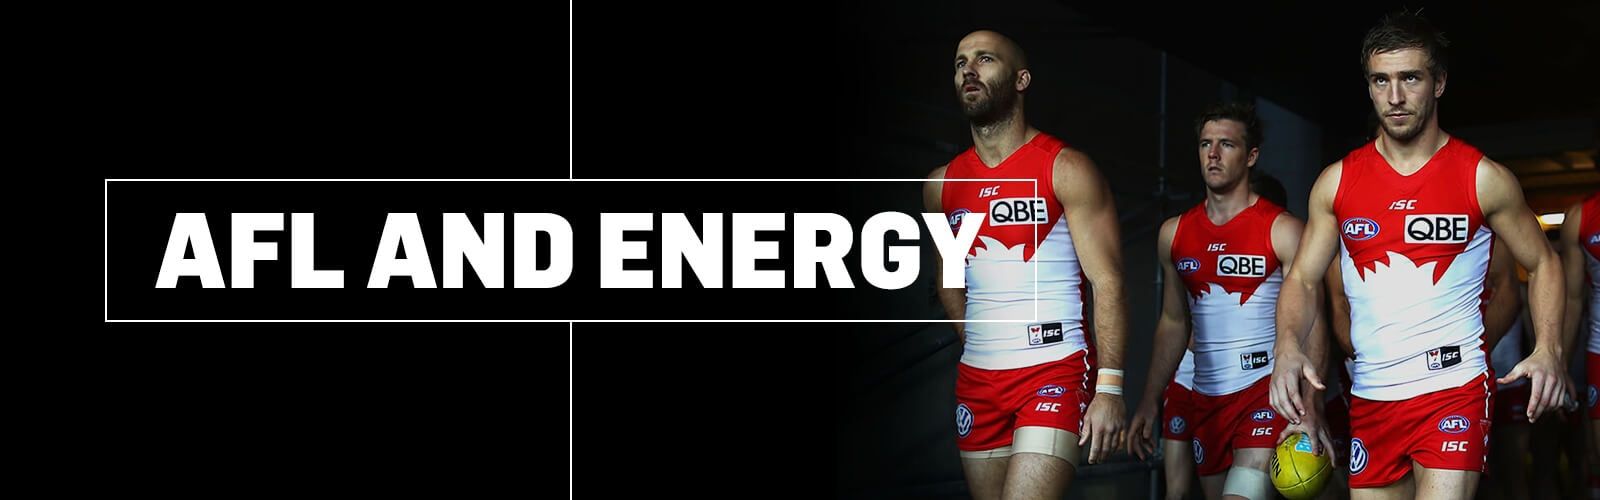 AFL AND ENERGY